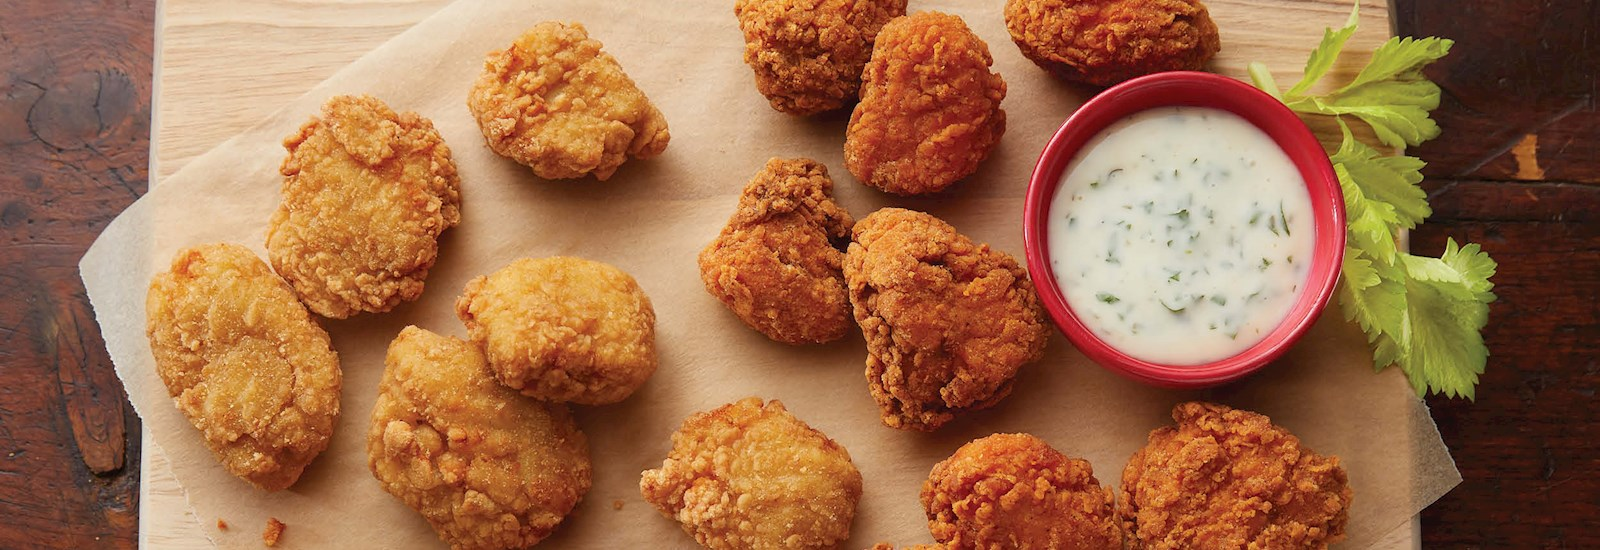 Save $10 per case, up to $1000 on Select Boneless Wings and Par Fried Products